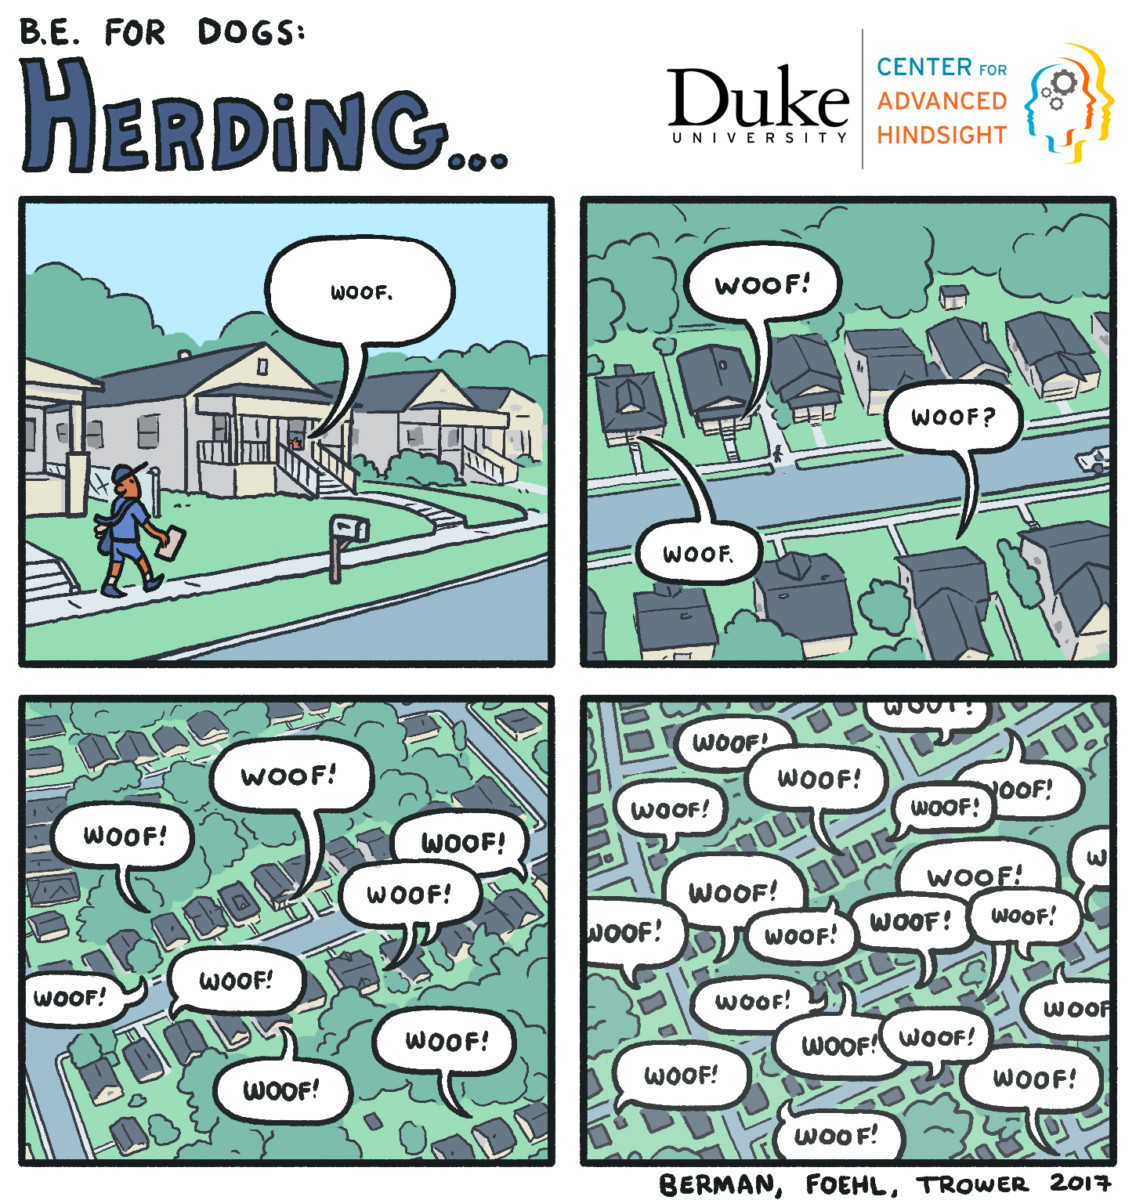 herding behavior | Behavioral economics | Center for advanced hindsight